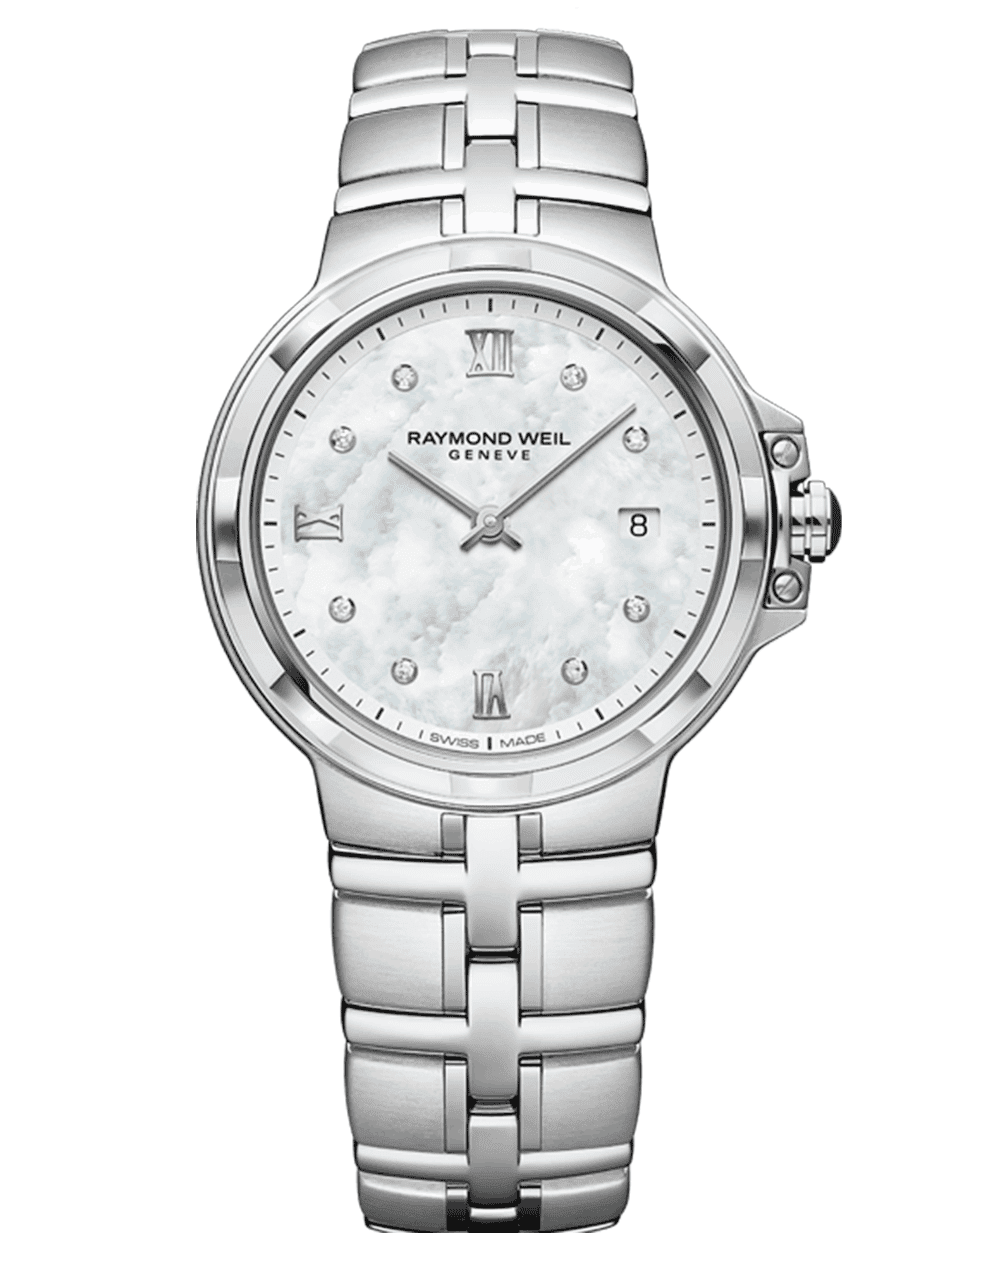 RAYMOND WEIL Geneve Mother of Pearl DIal Ladies Luxury Watch